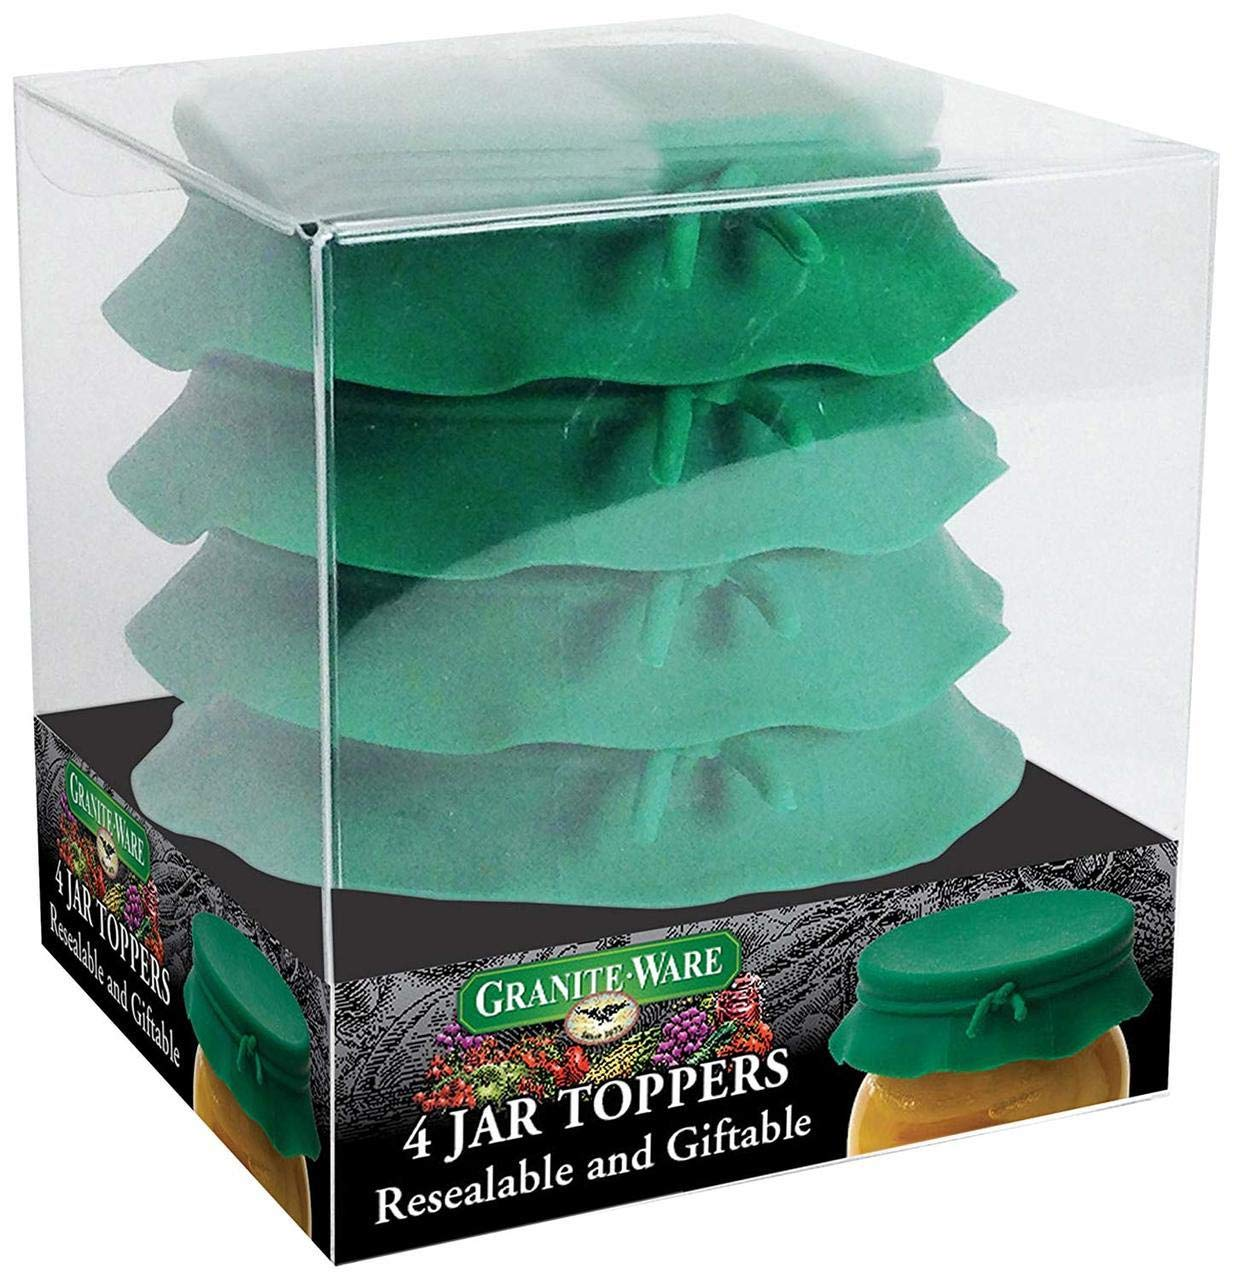 GraniteWare Wide Mouth Green Jar Toppers 4 Pack, (Set of 1) by Granite Ware